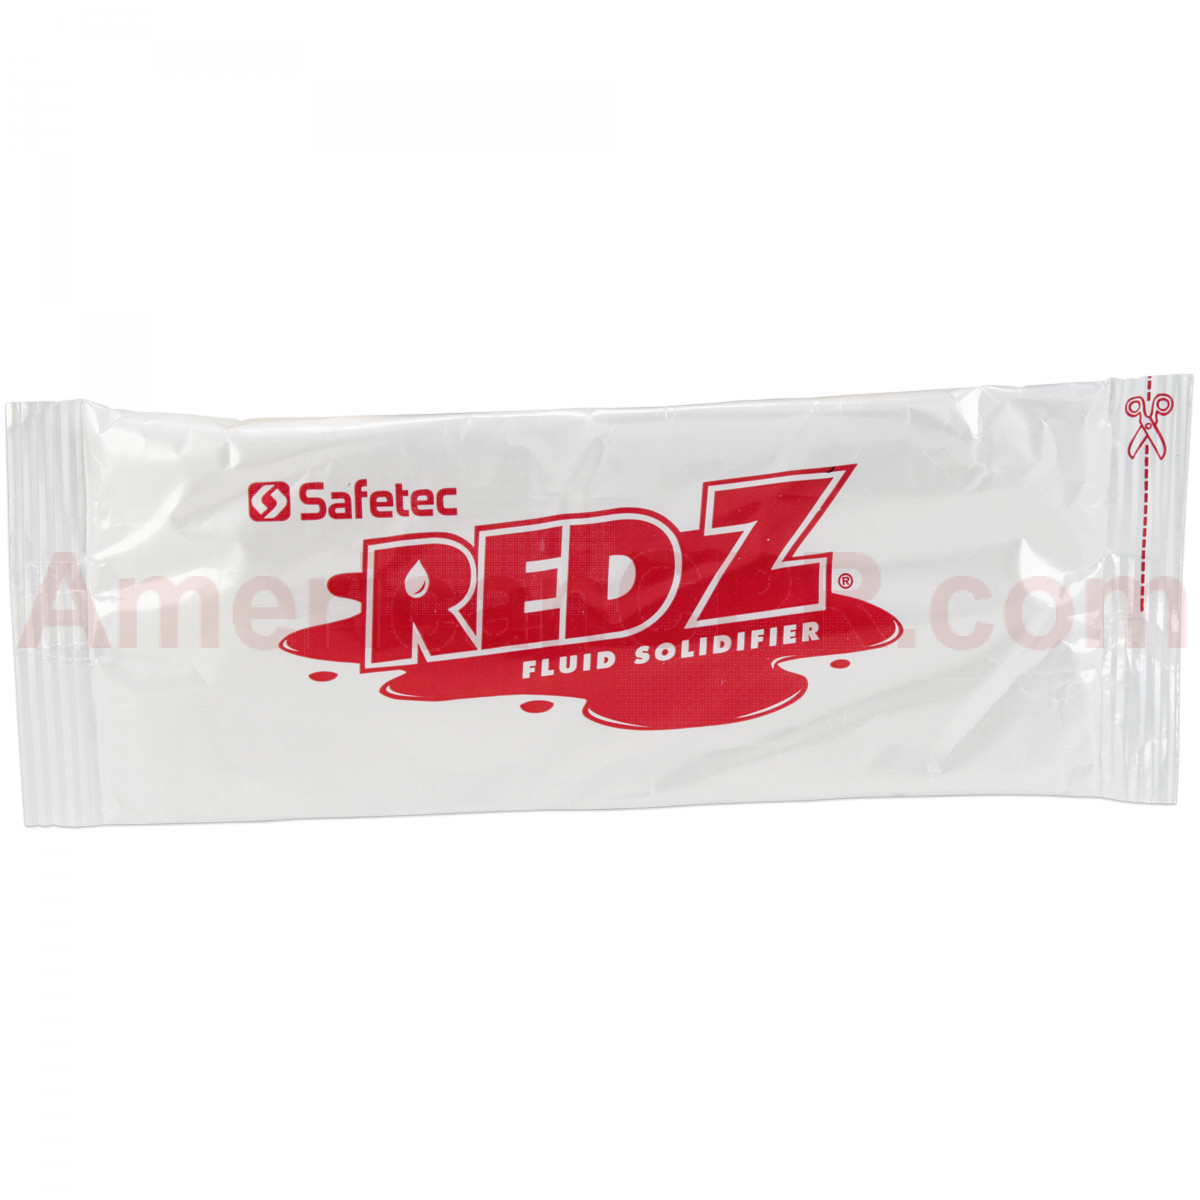 Red-Z Fluid Control Solidifier, 2 oz. Pack - Red-Z